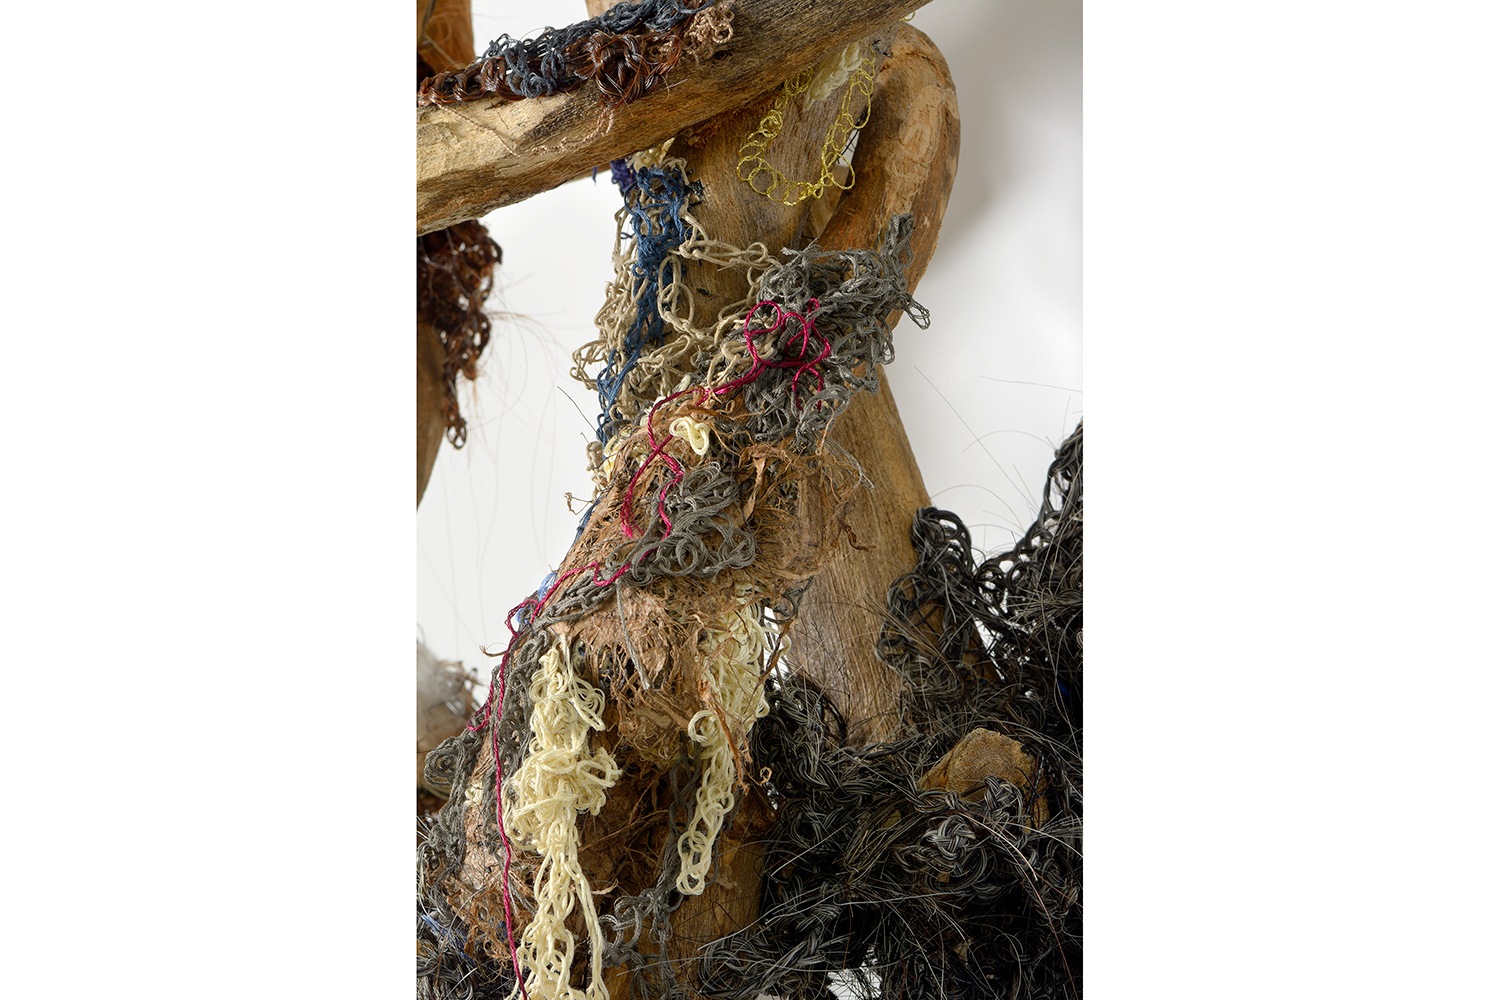 Moving On natural art sculpture from Donna Forma